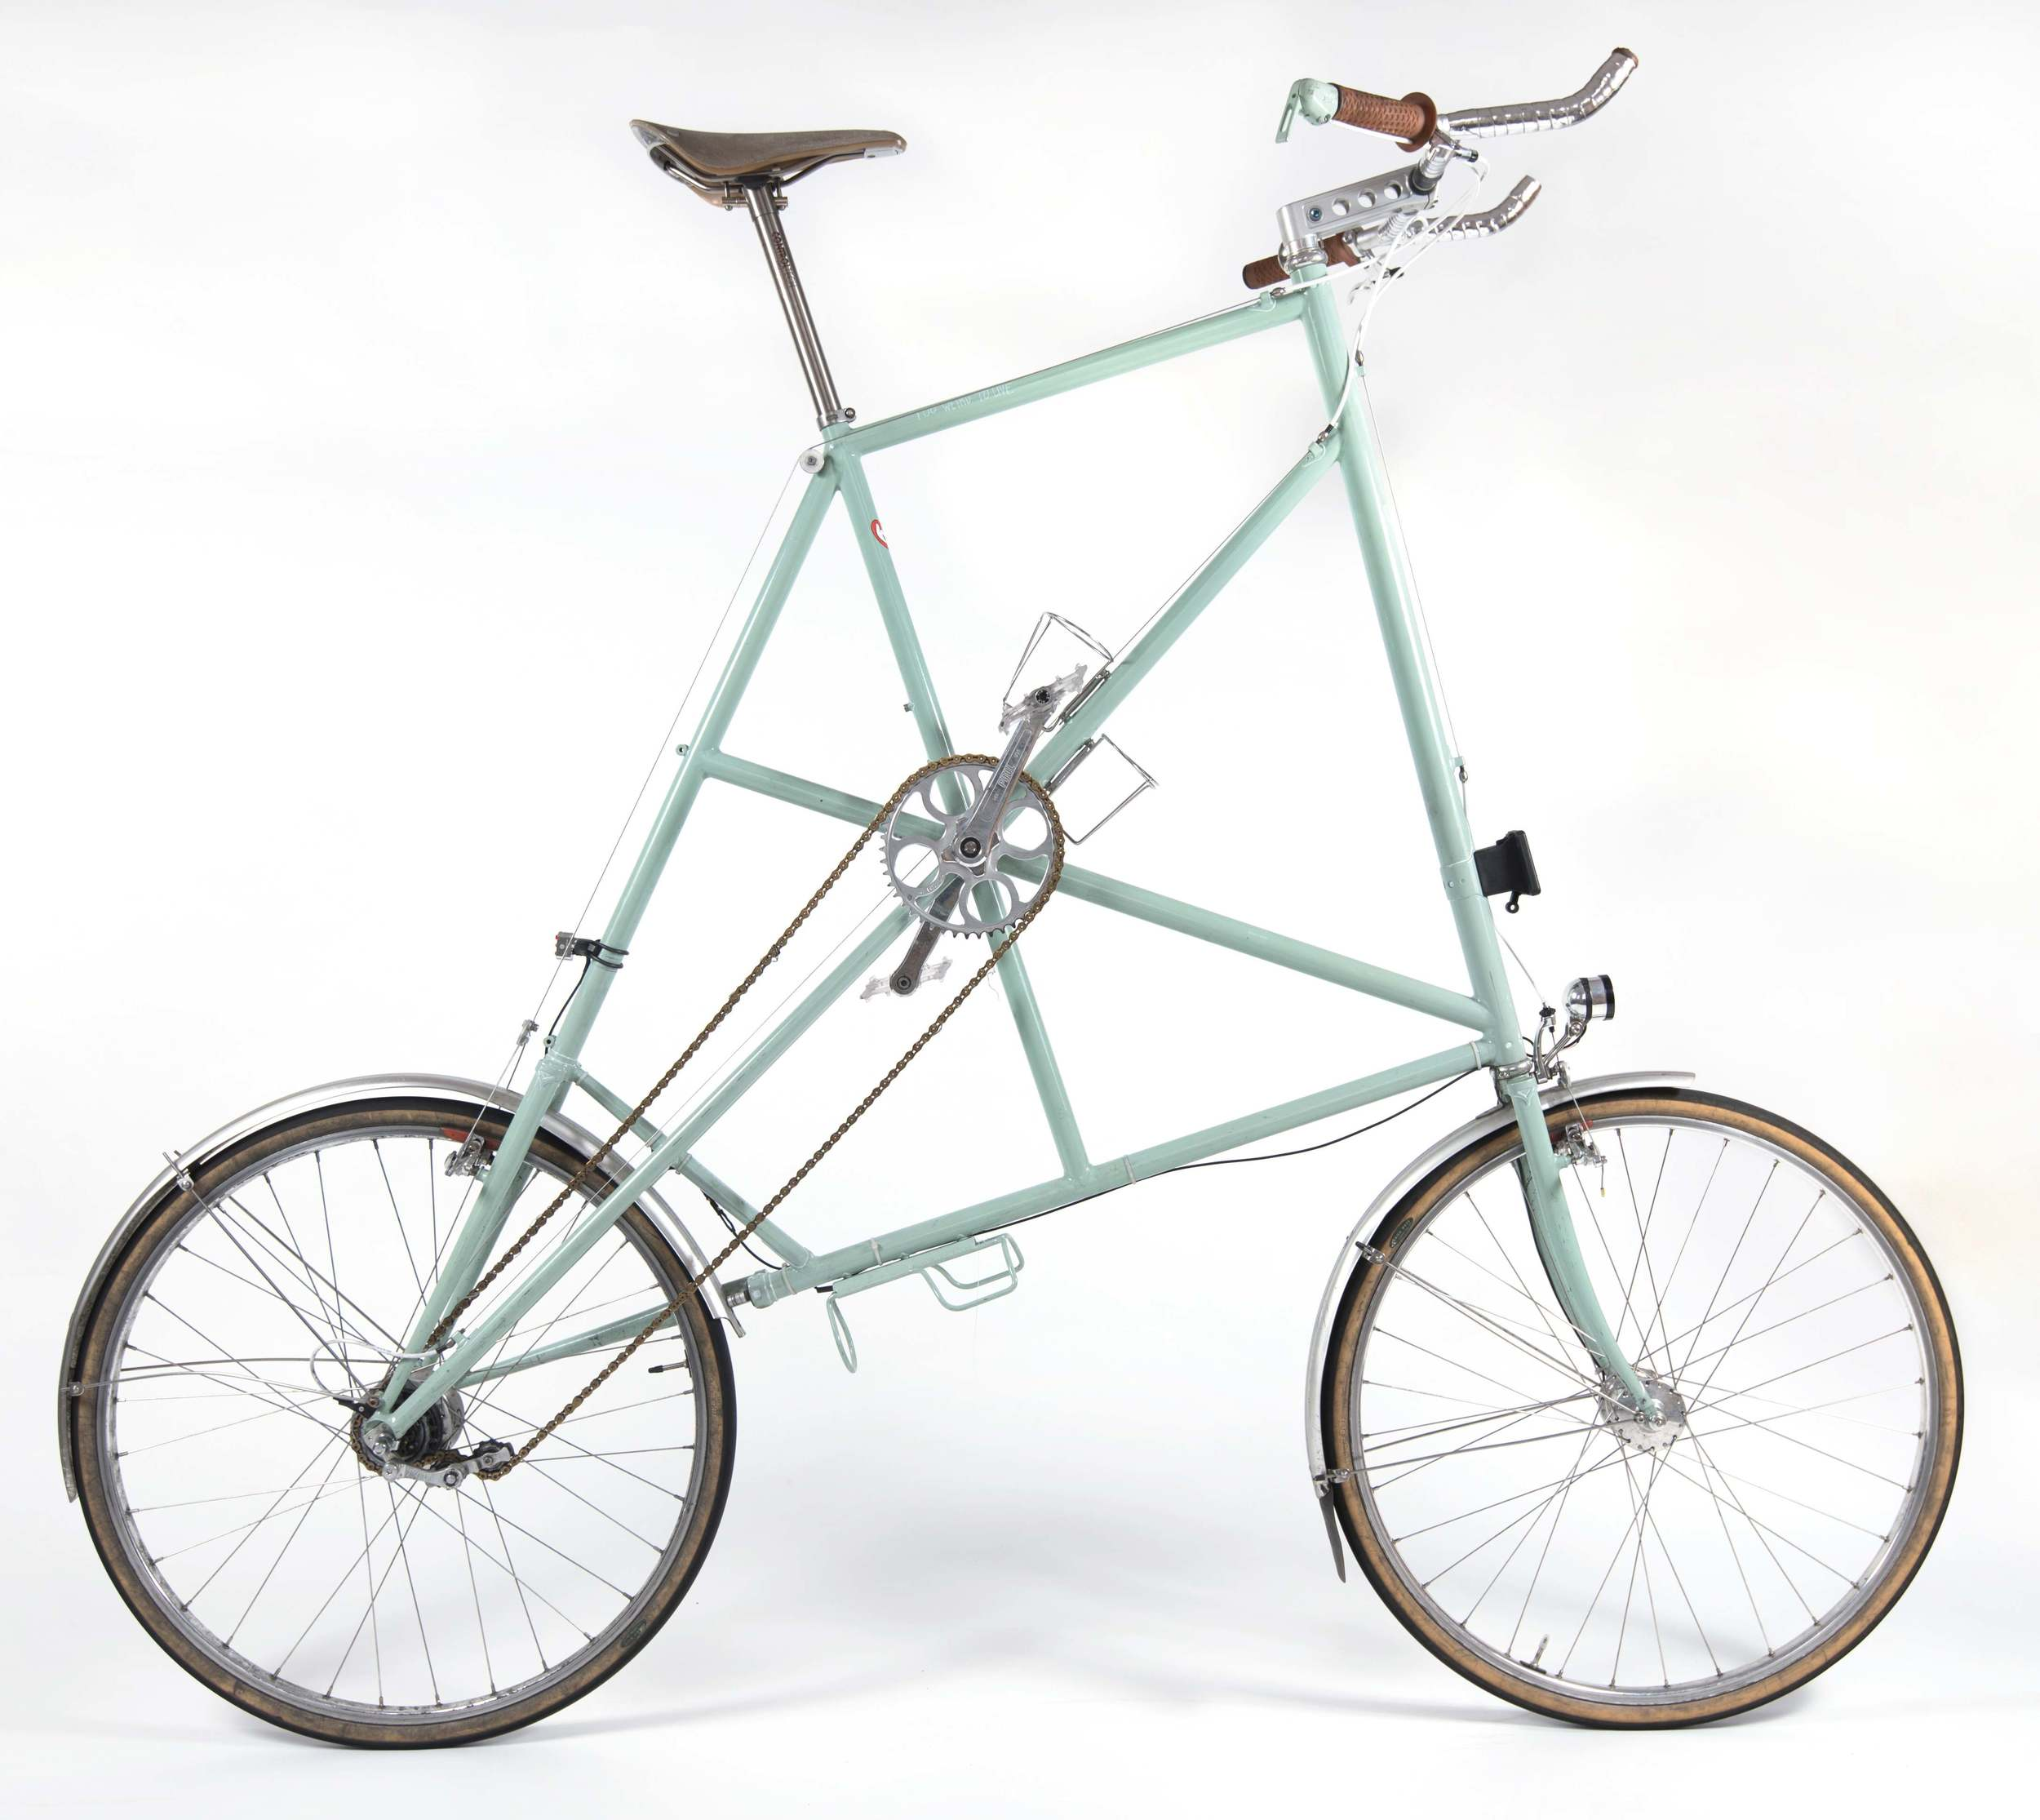 The aptly named Tall Bike by Peter Georgallou, photographed by Ben Broomfield